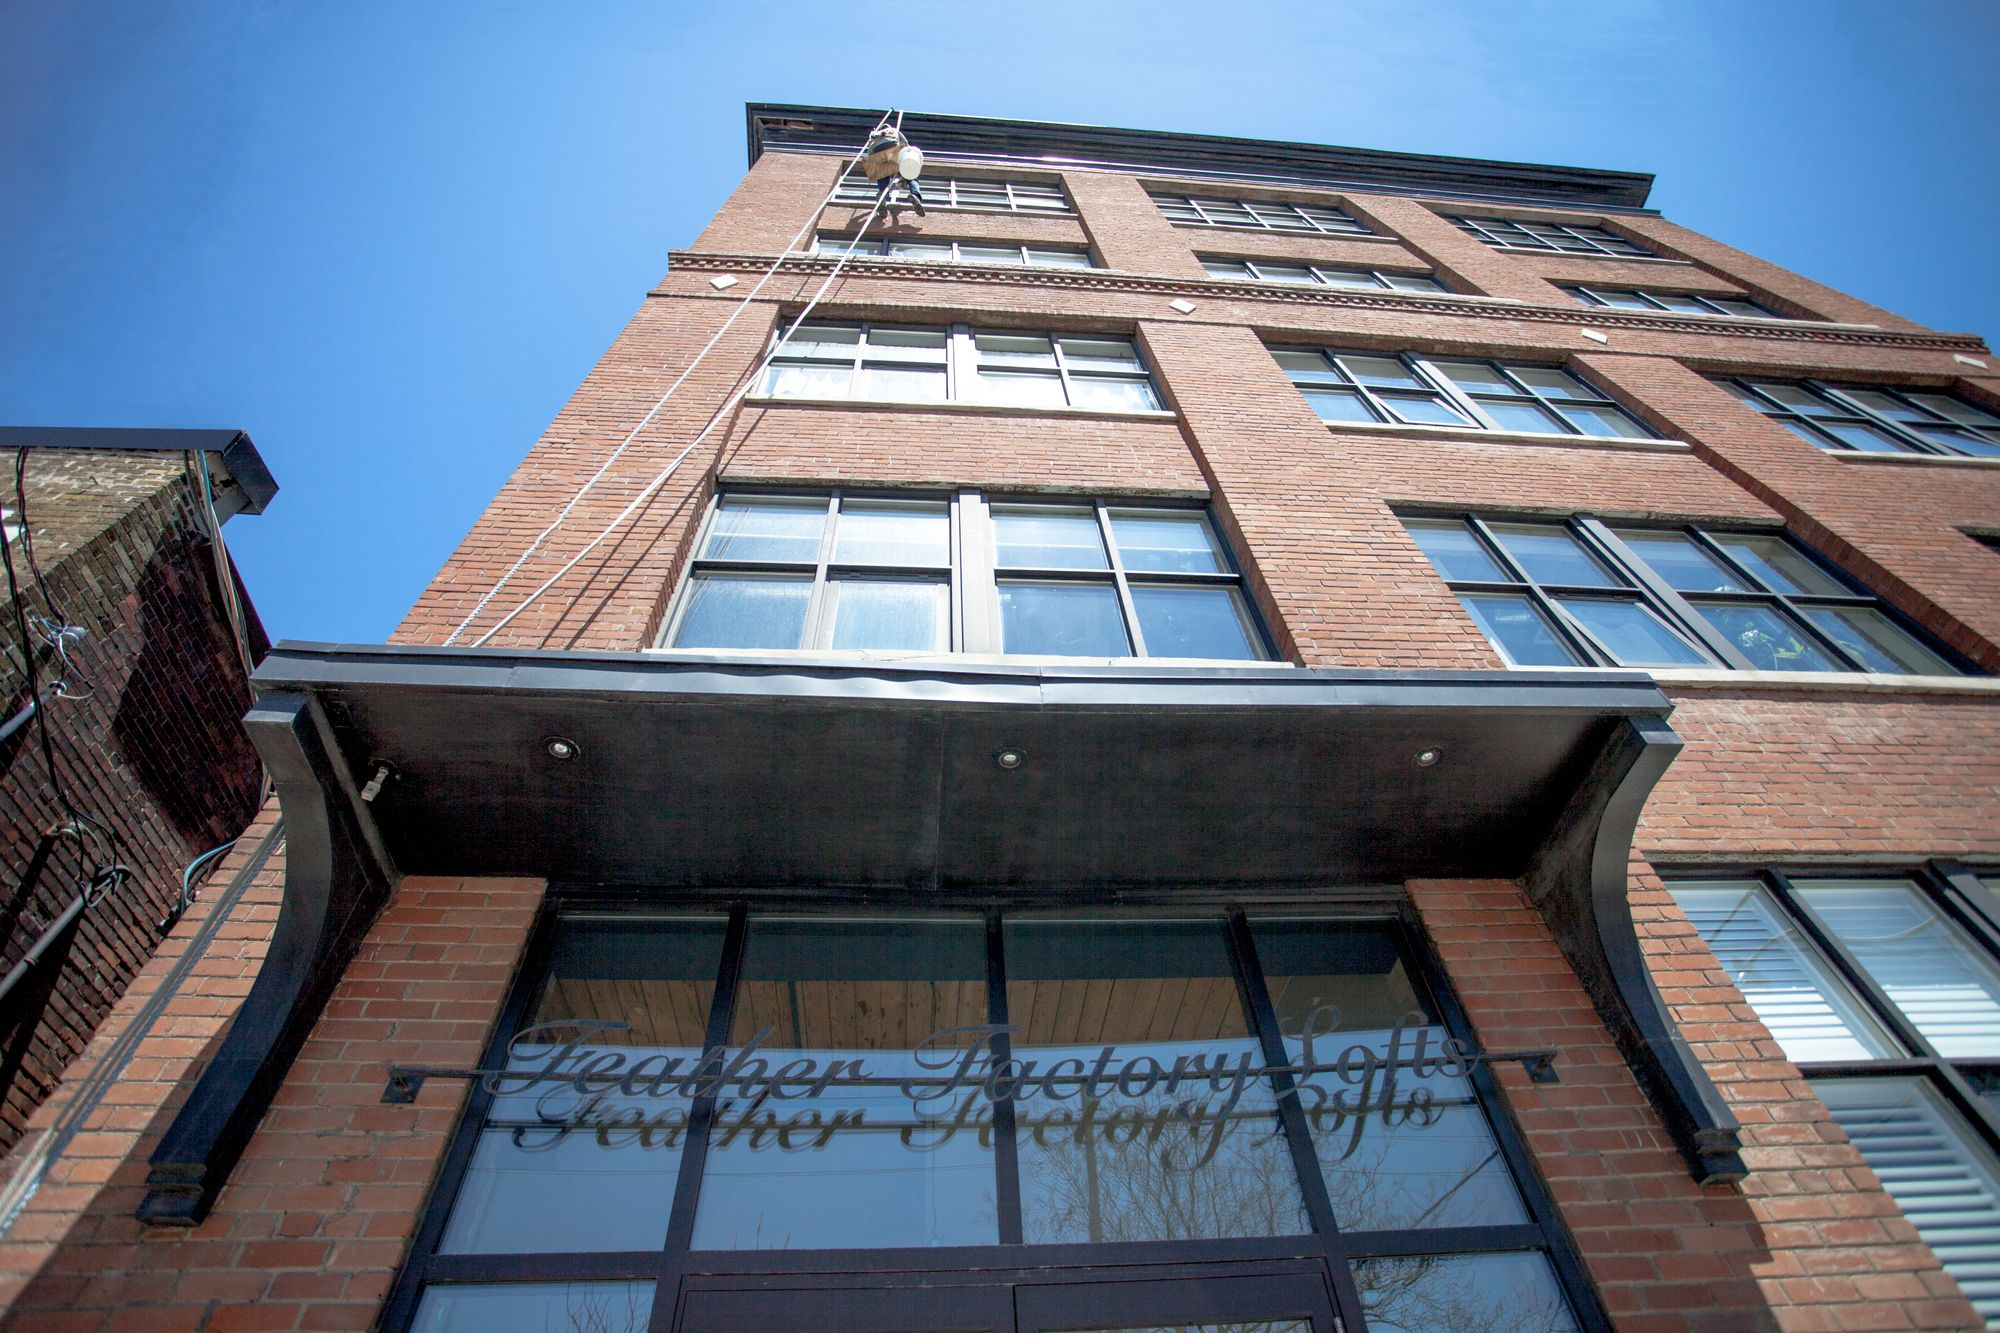 2154 Dundas St W. This loft at Feather Factory Lofts is located in  West End, Toronto - image #2 of 5 by Strata.ca